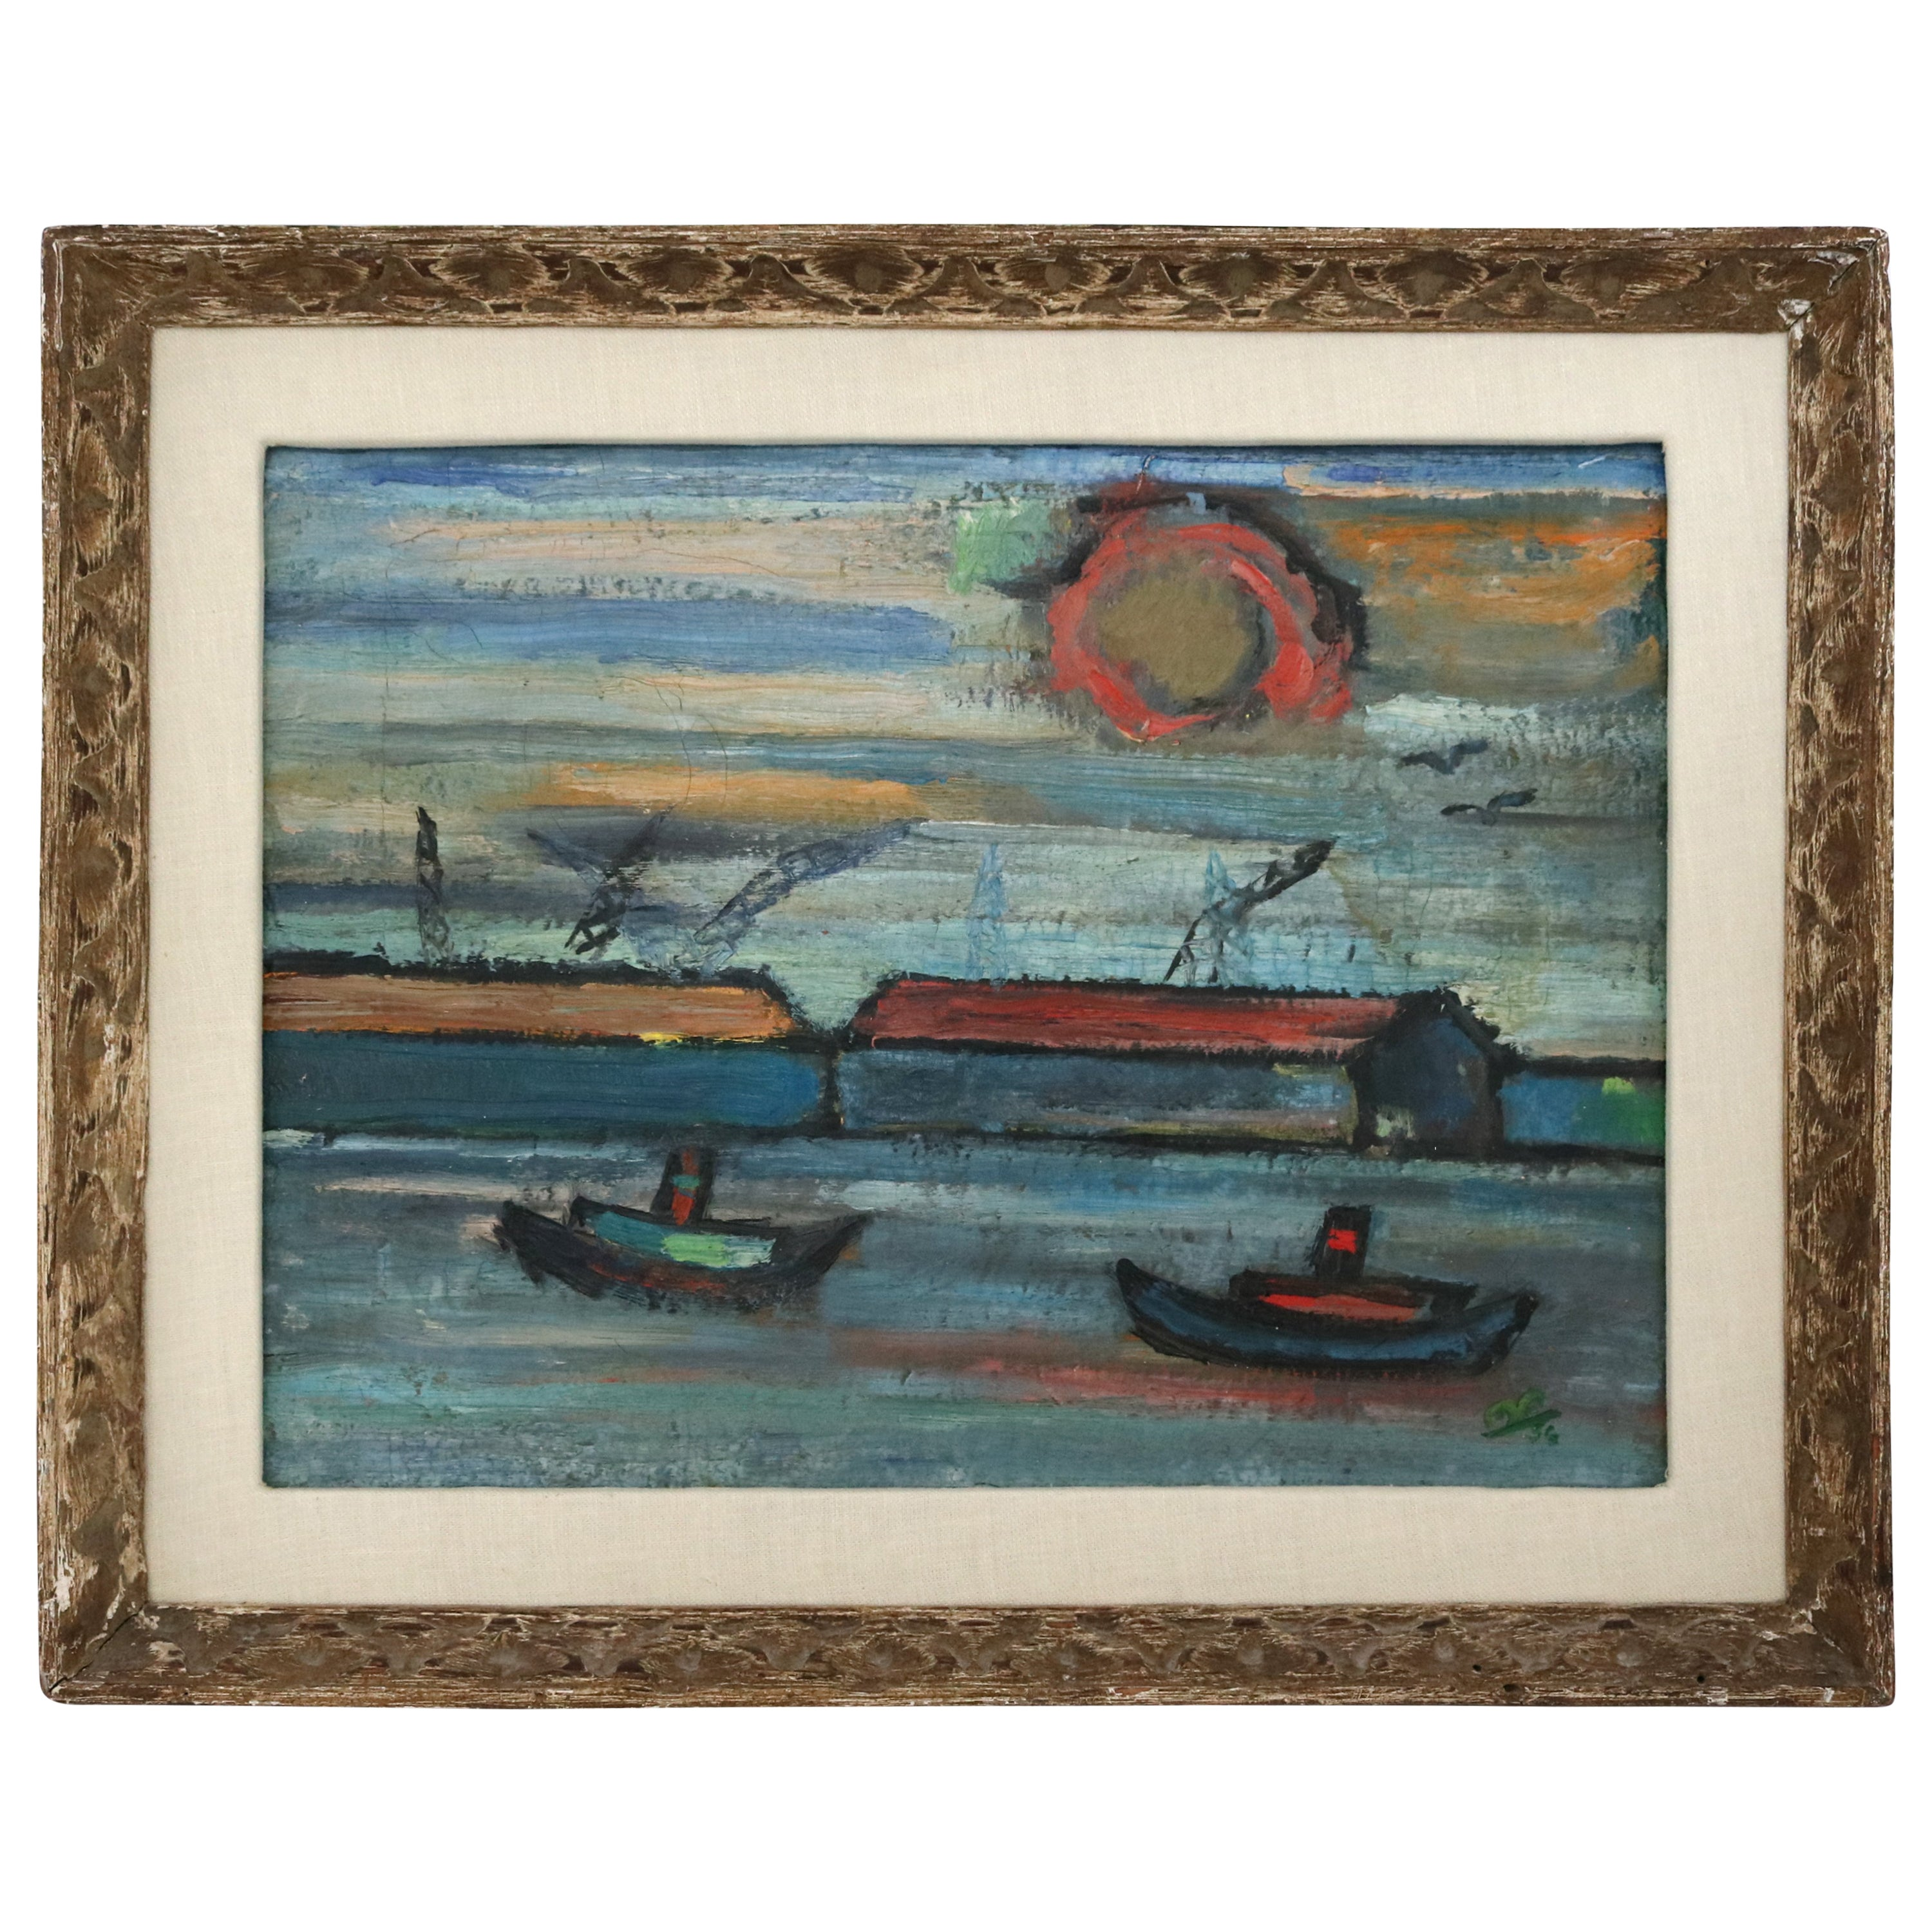 Oil on Canvas Impressionist Painting of a Harbor Scene, circa 1956